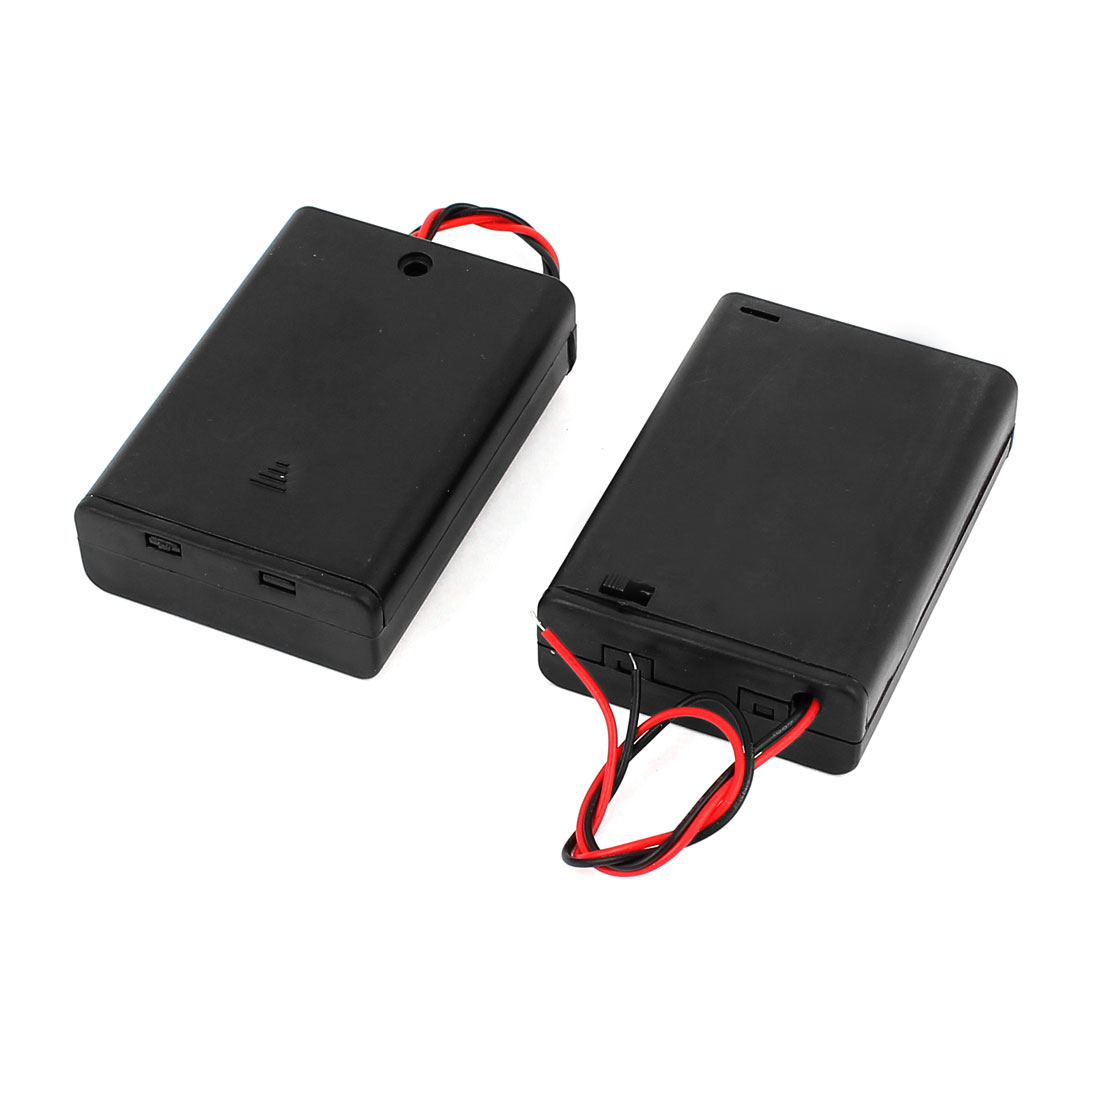 2PCS ON/OFF Switch 2 Wires Batteries Holder Box w Cover for 3x1.5V AA Battery